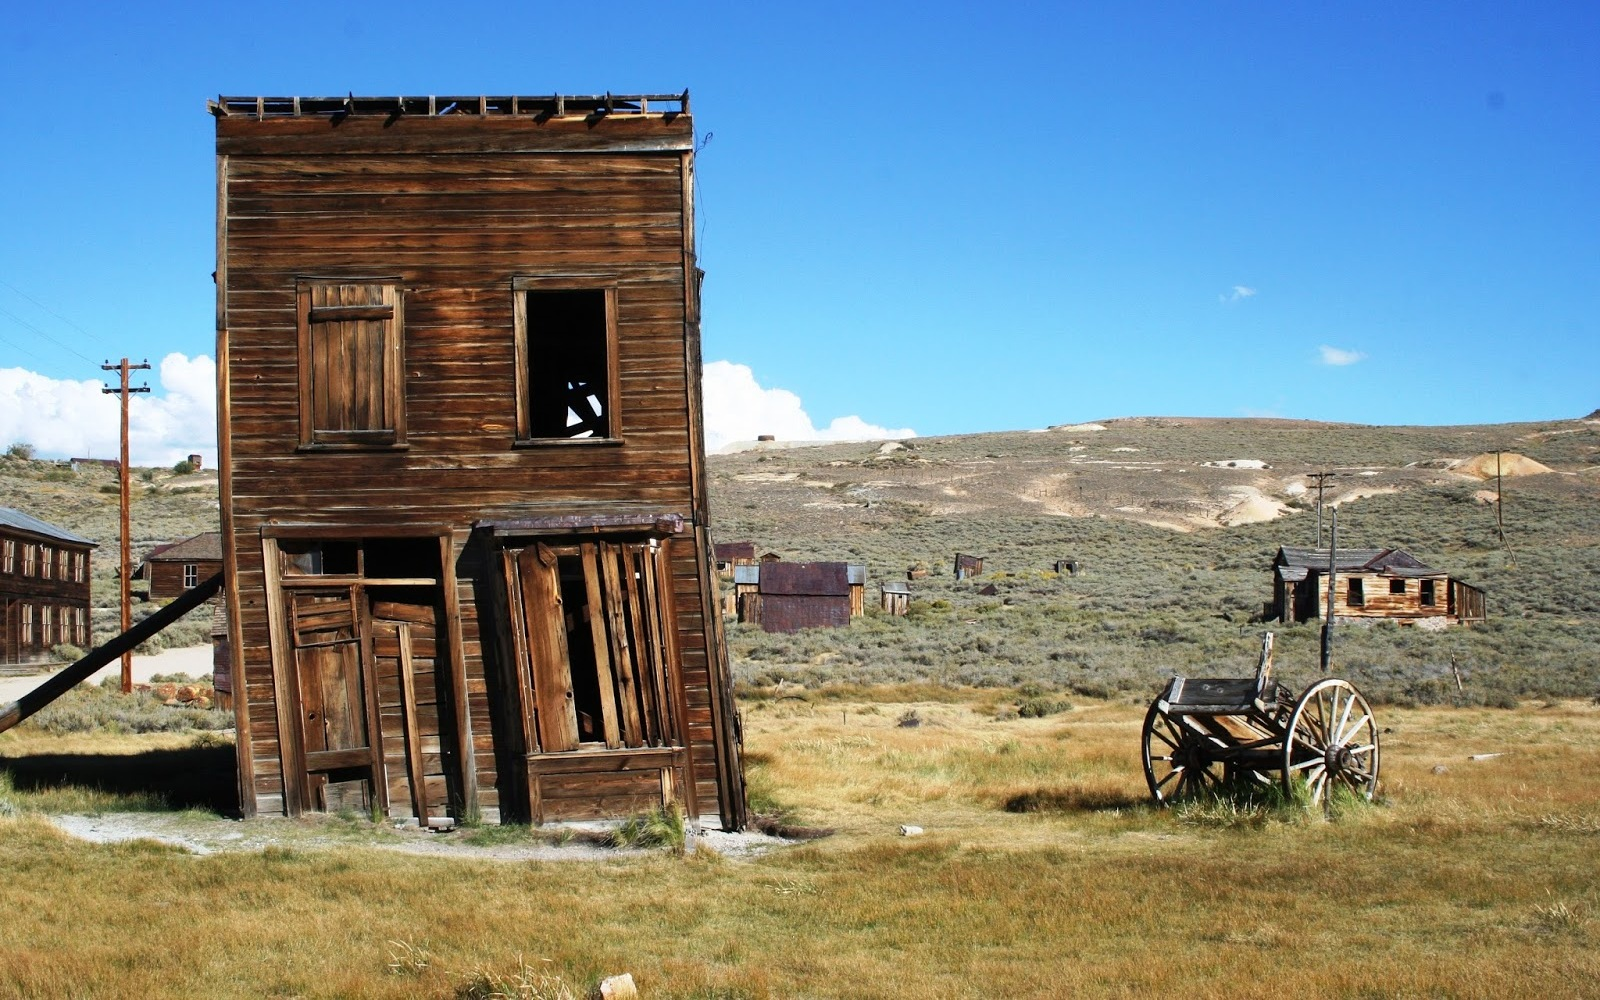 a ghost town with a quad Ghost town loop is a mountain biking adventure located in or near westcliffe, co enjoy & research westcliffe, colorado with trail guides, topo maps, photos, reviews & gps routes on trailscom.